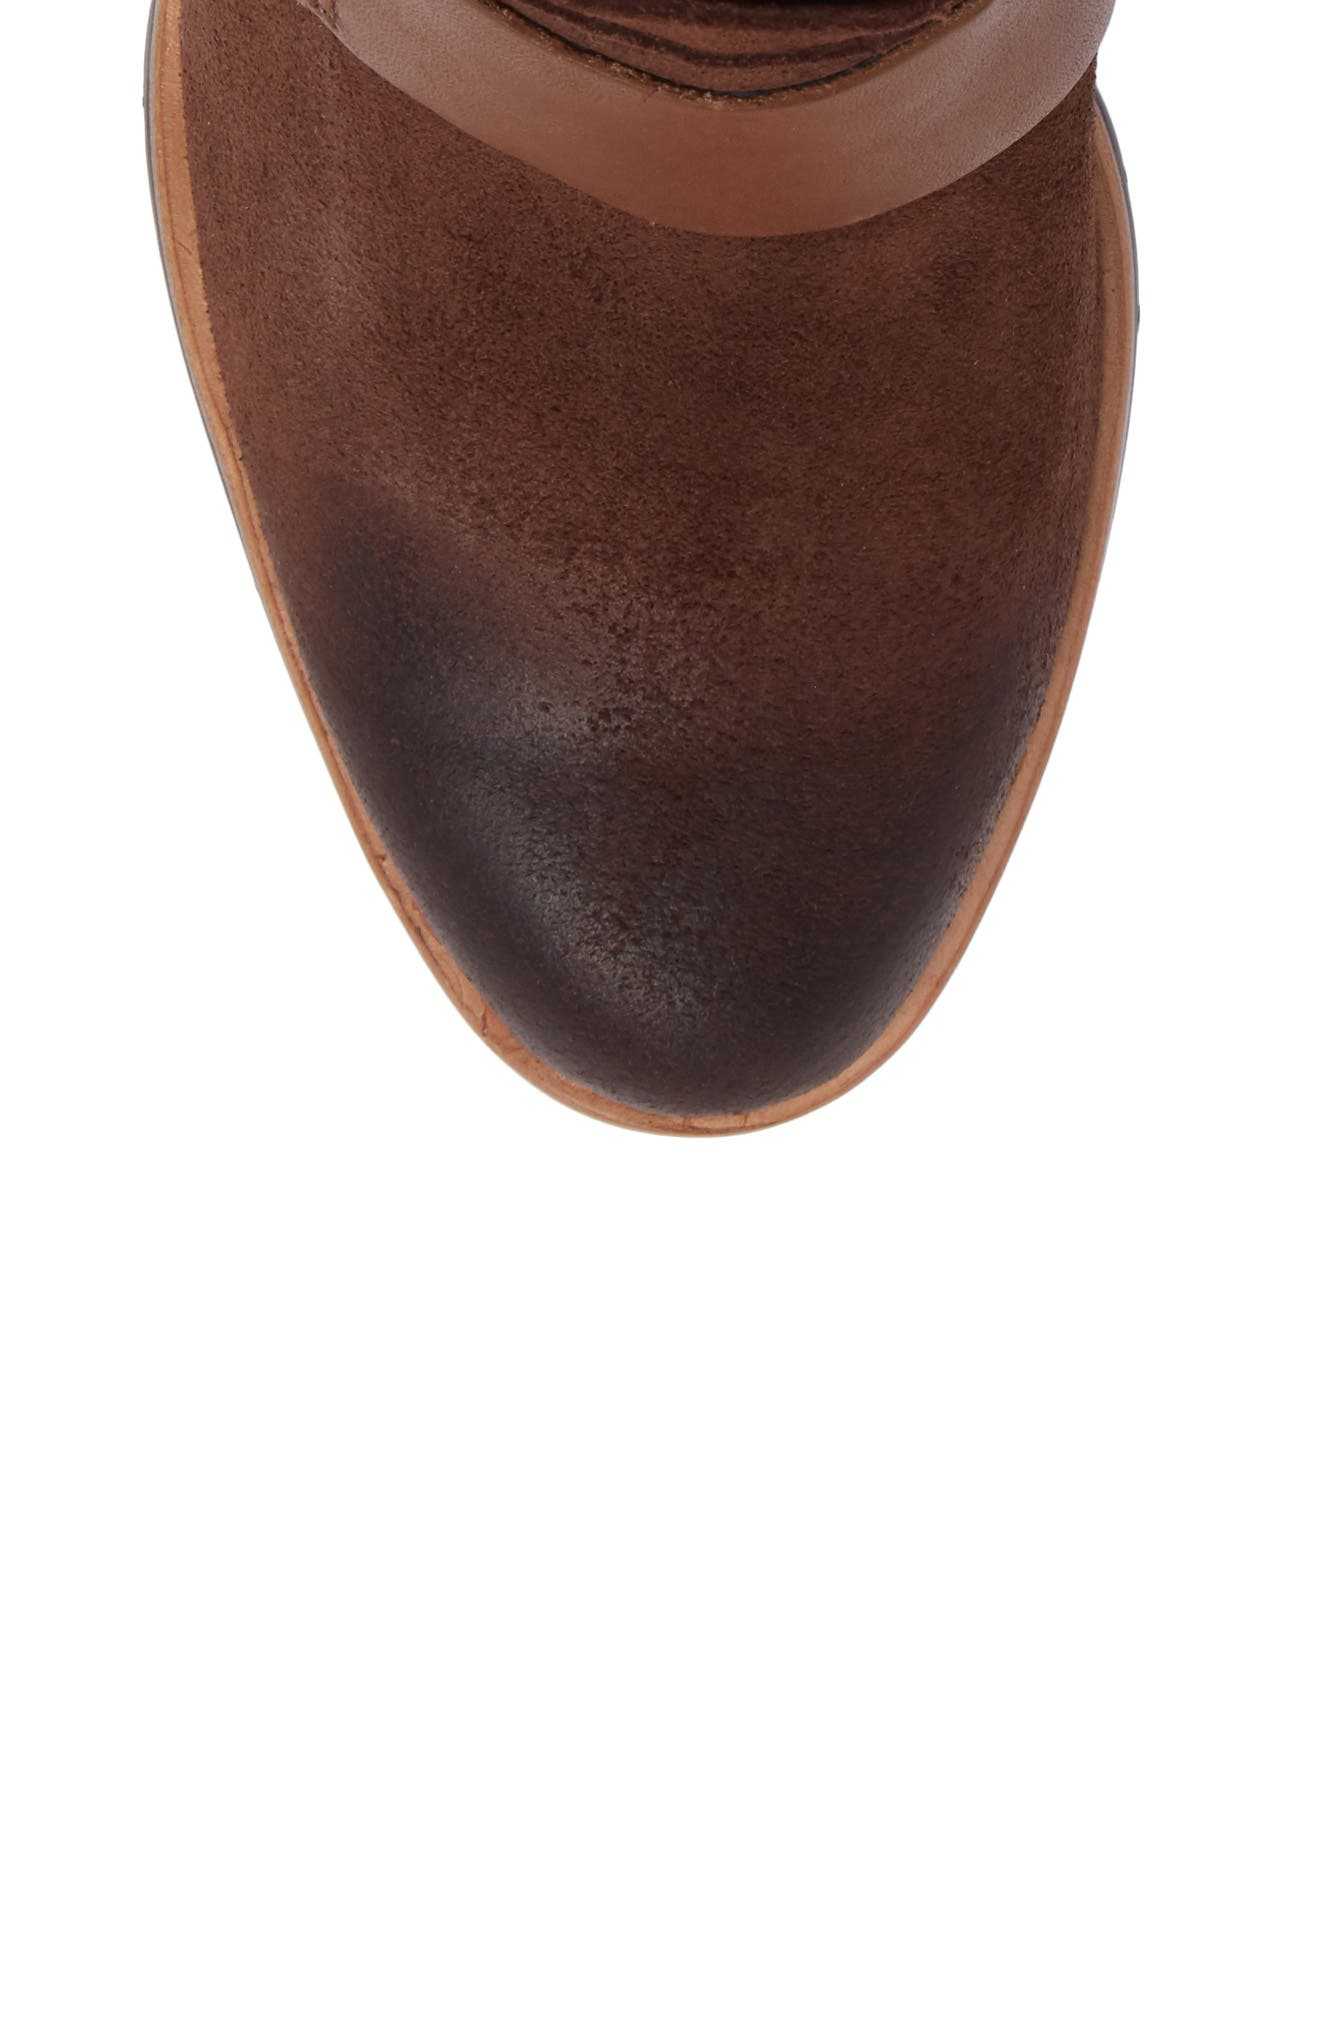 After Hours Waterproof Bootie,                             Alternate thumbnail 14, color,